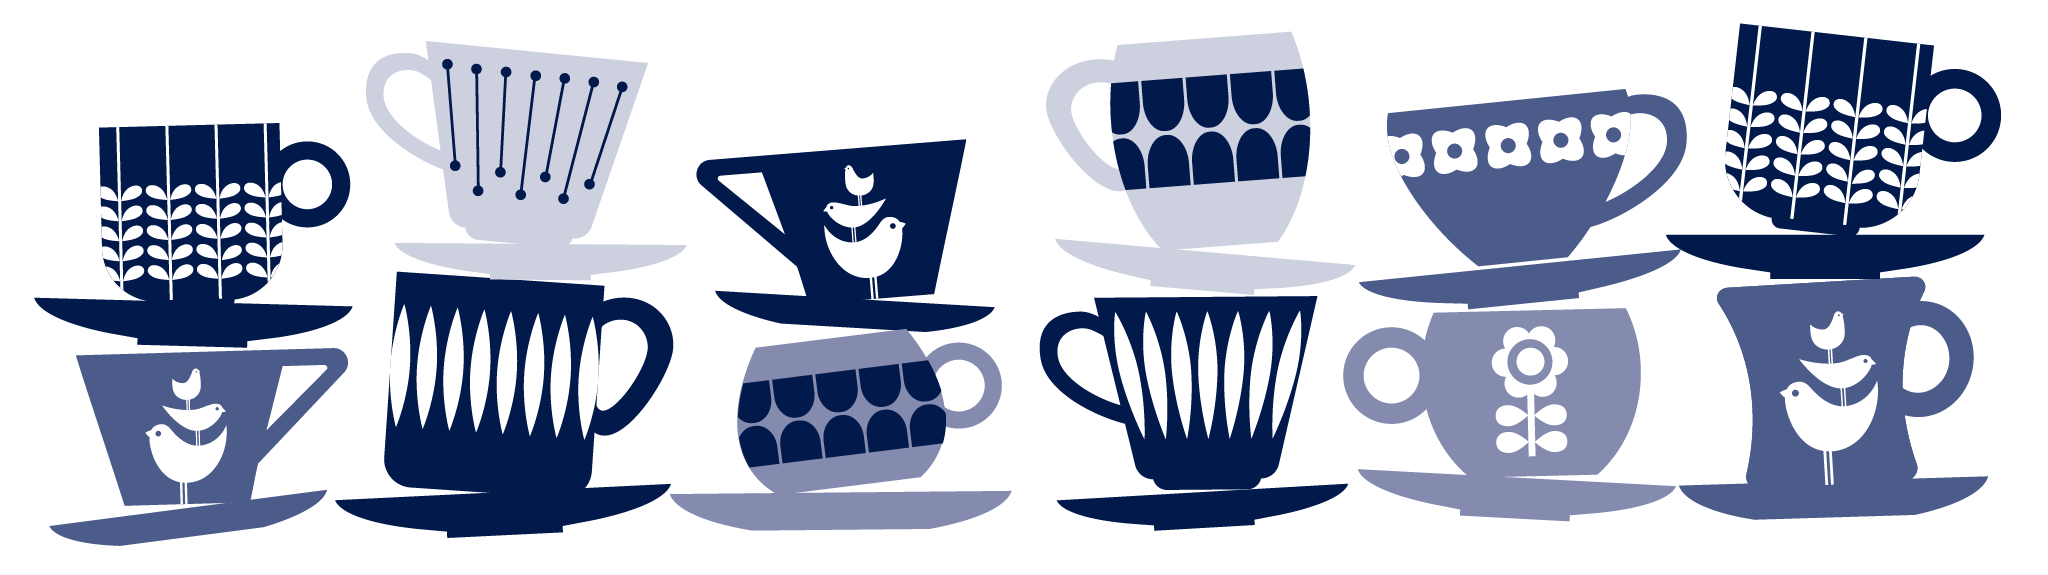 Quietly stacked coffee cup illustration